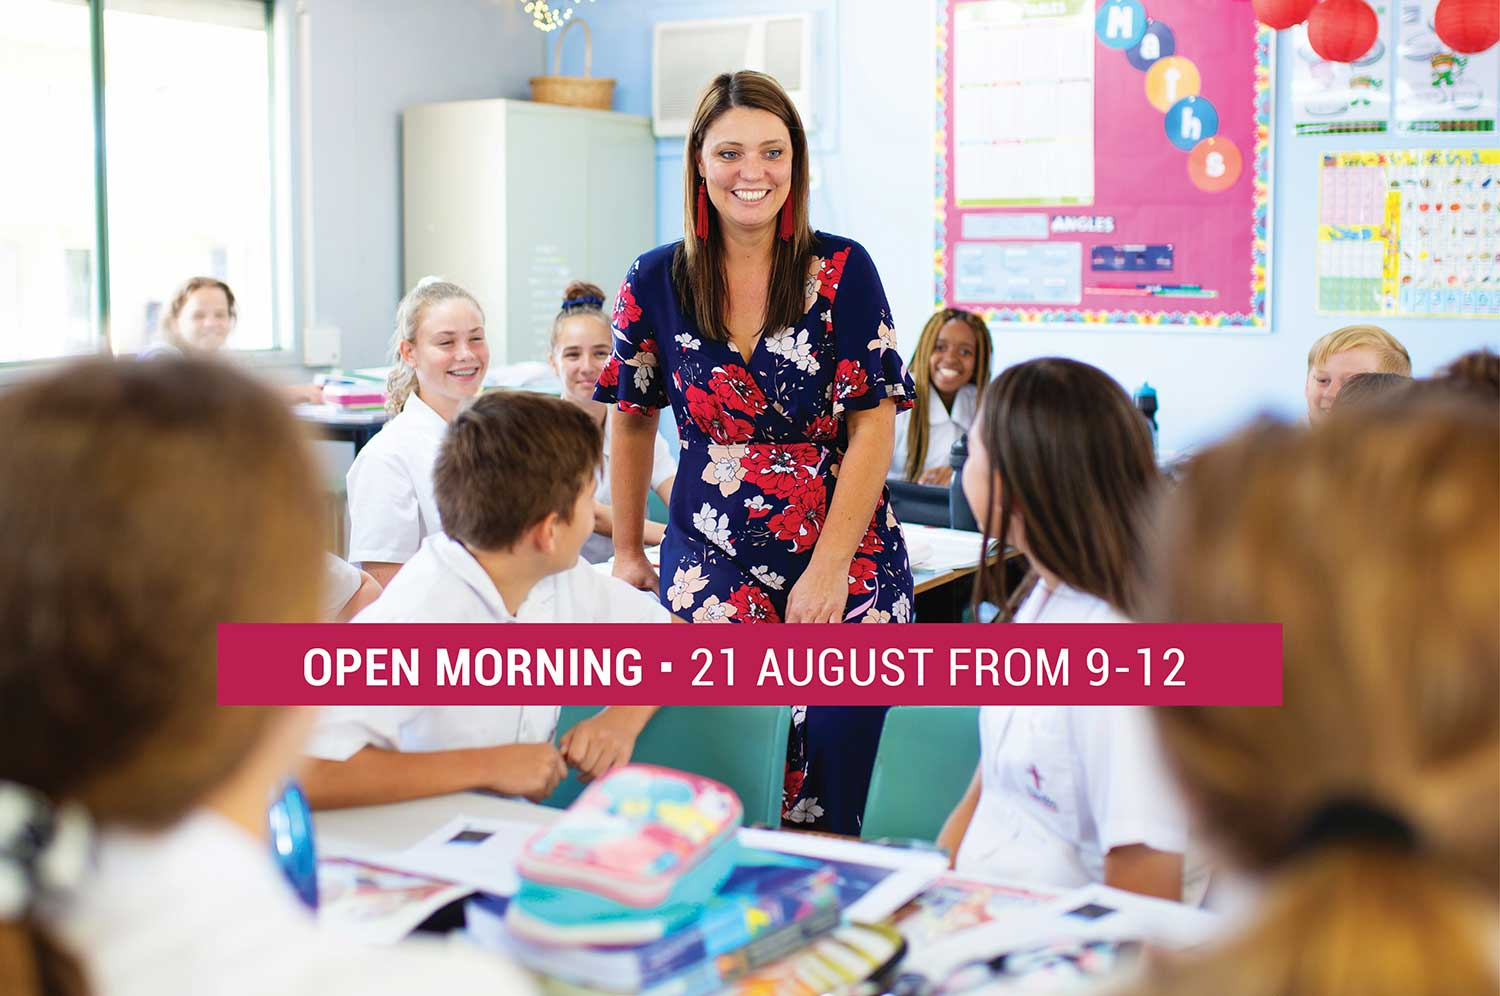 charlton christian college open morning august 2019